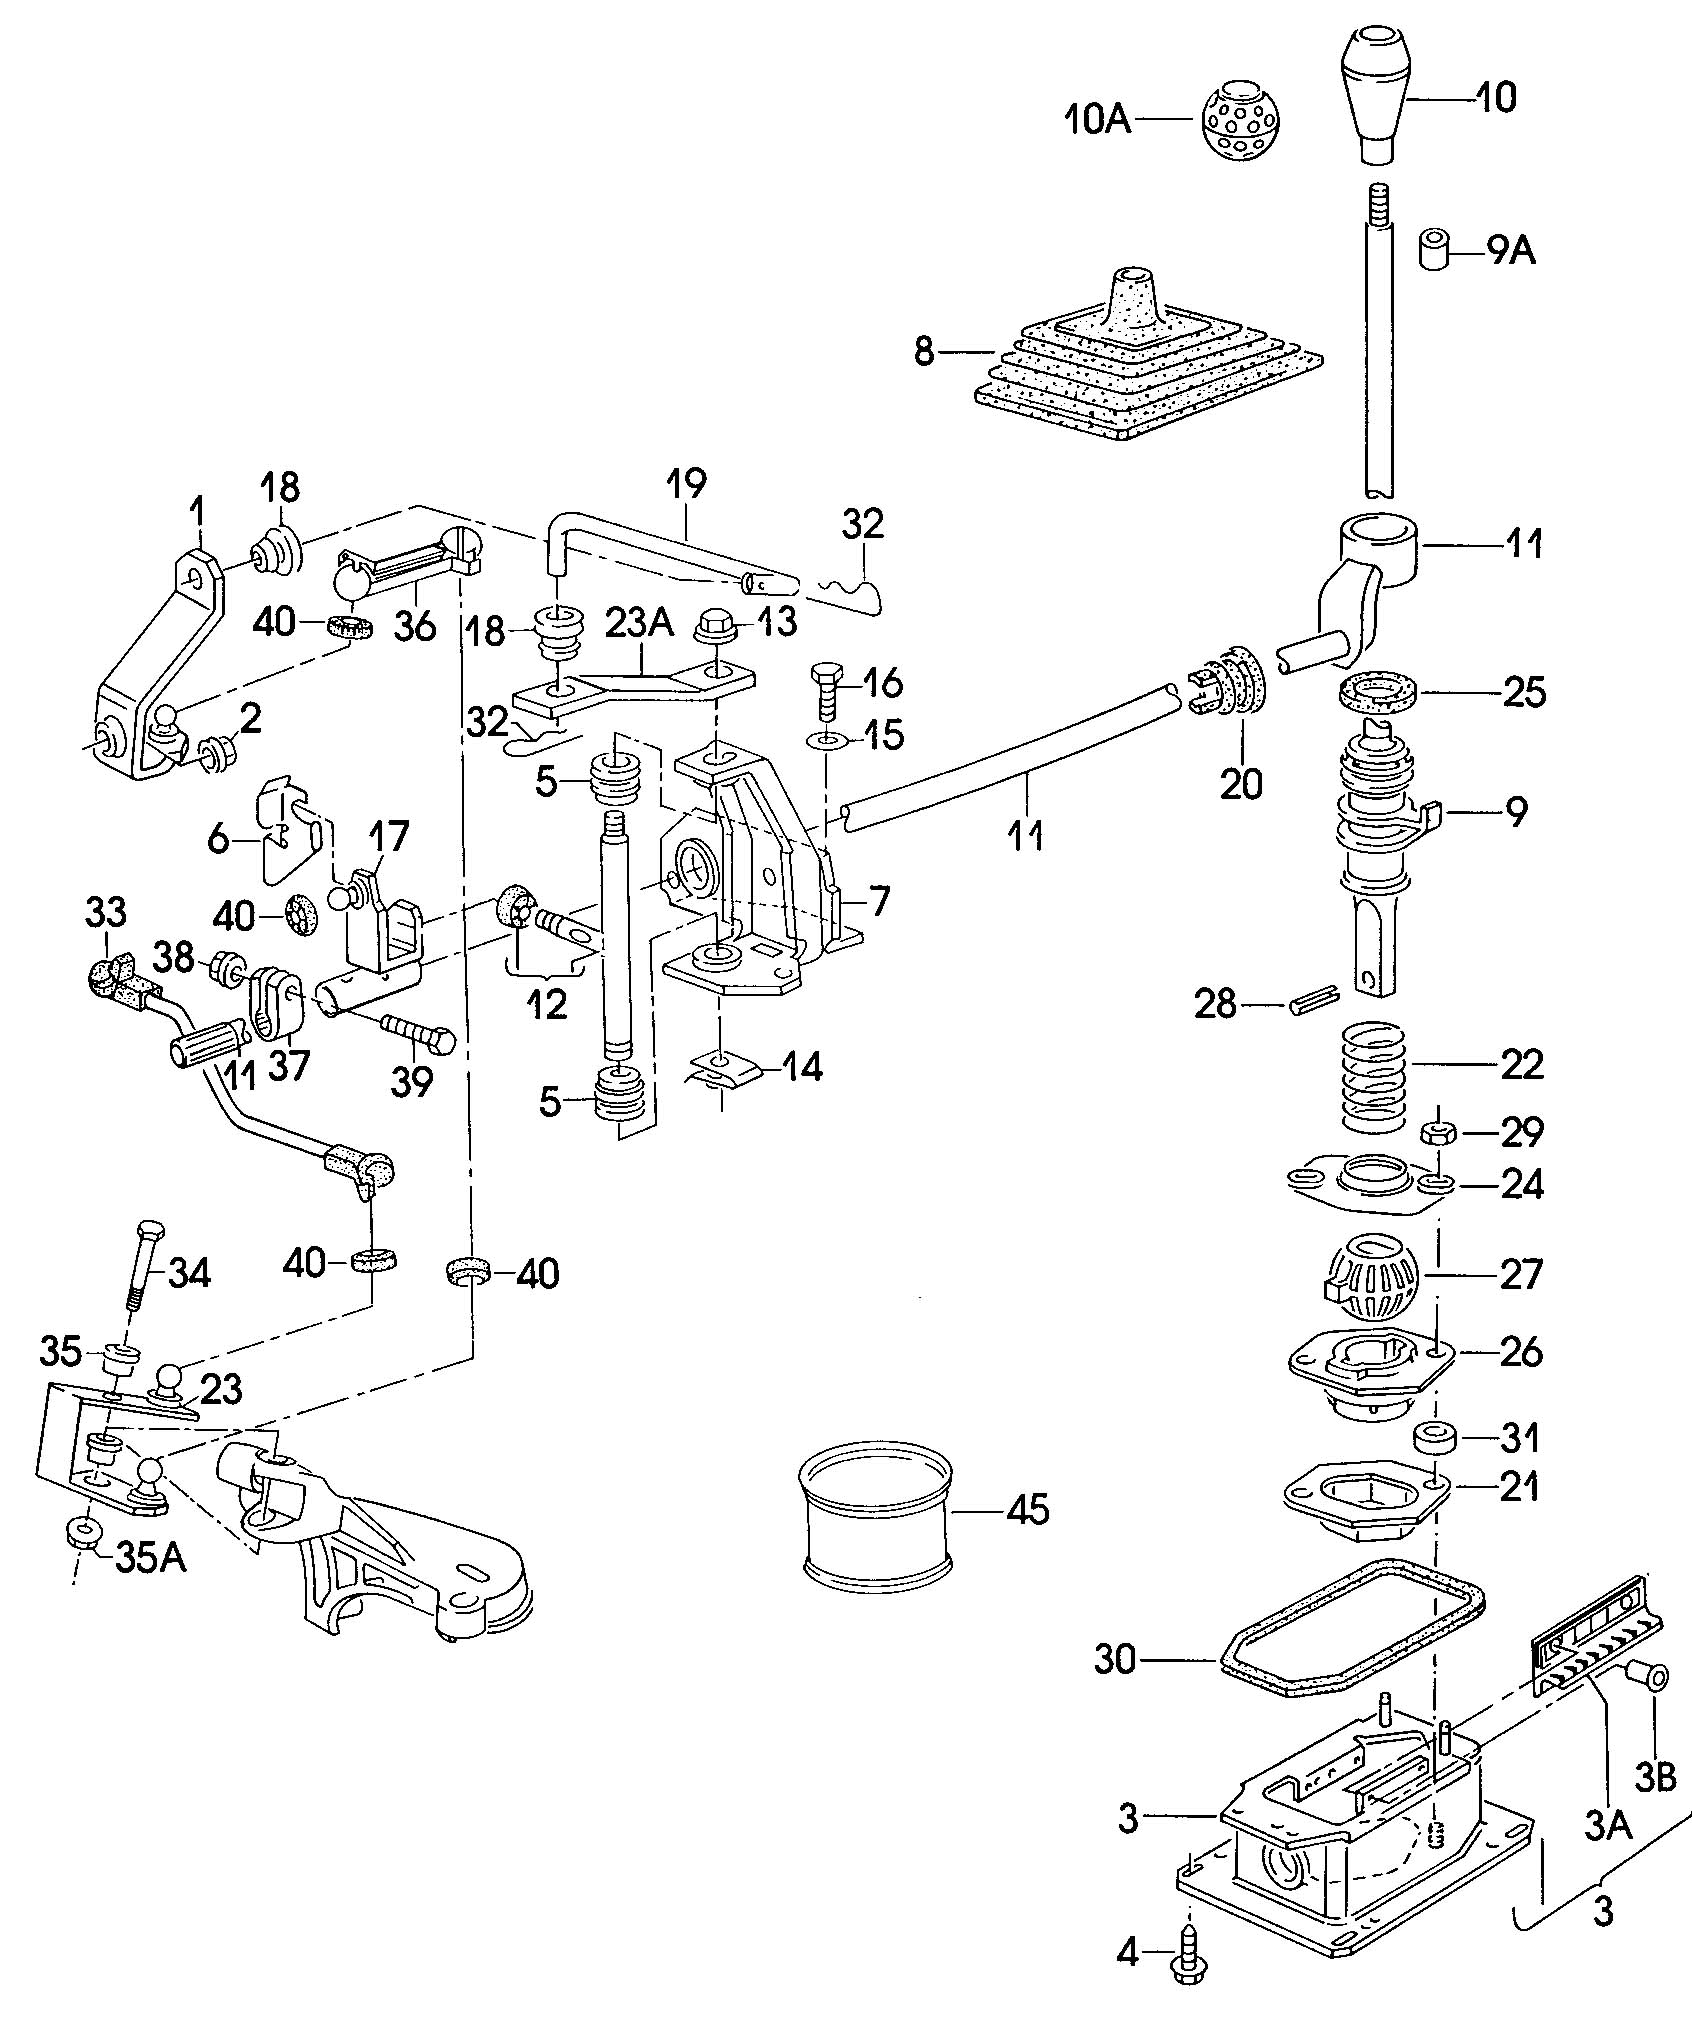 Sifting 2000 Volkswagen Jetta Parts Diagram. Volkswagen